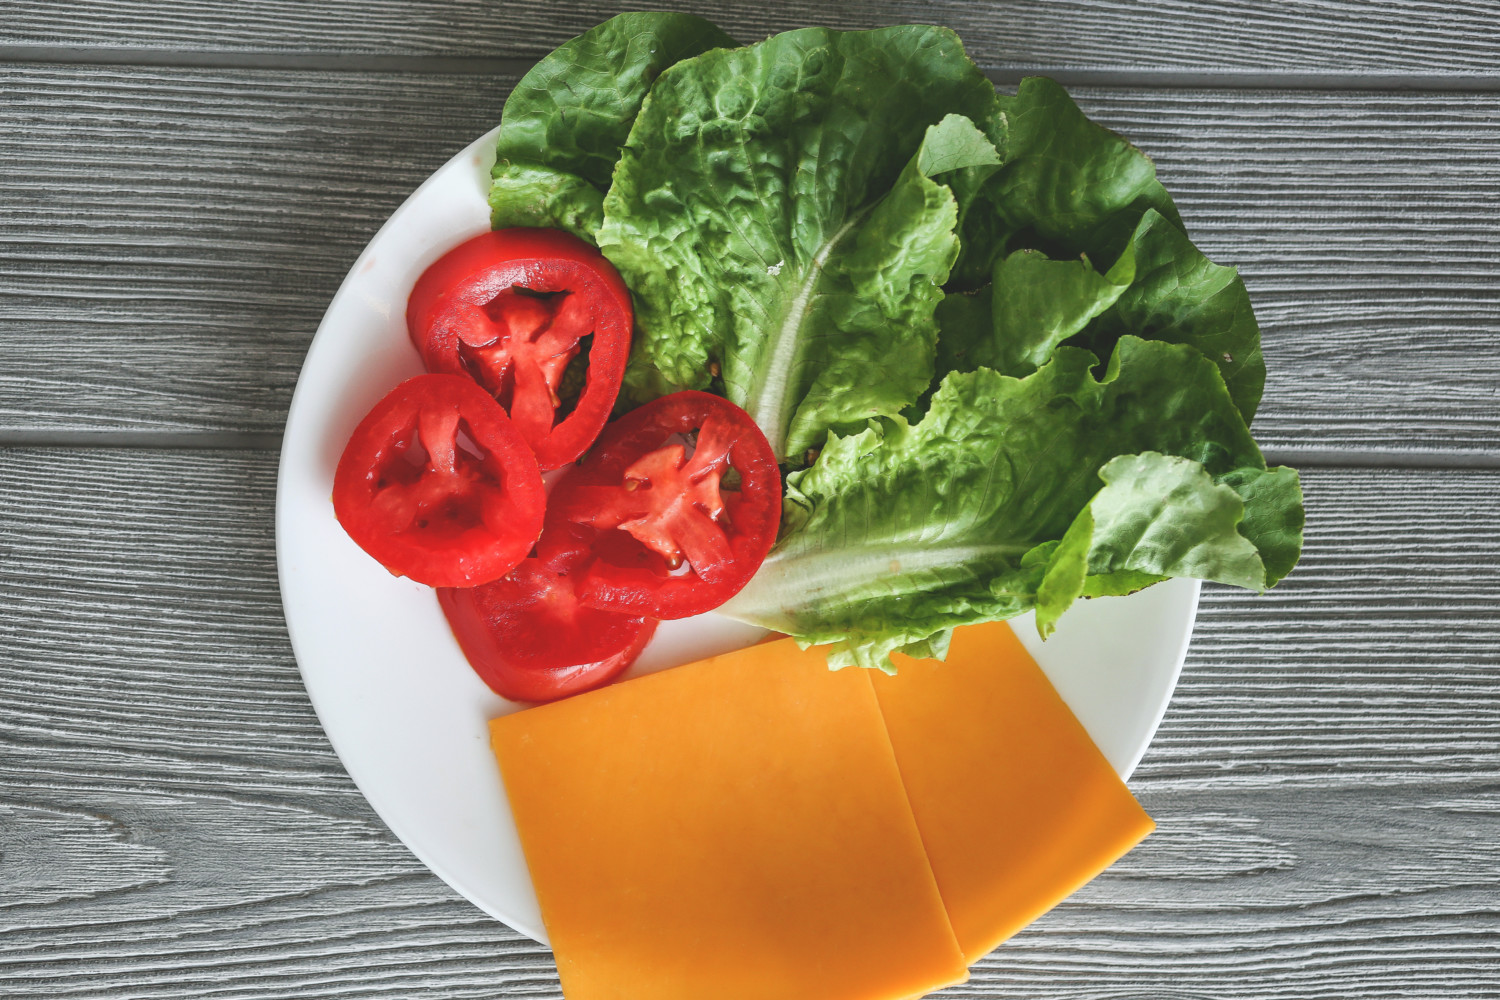 Lettuce, tomato and cheese burger toppings on white plate